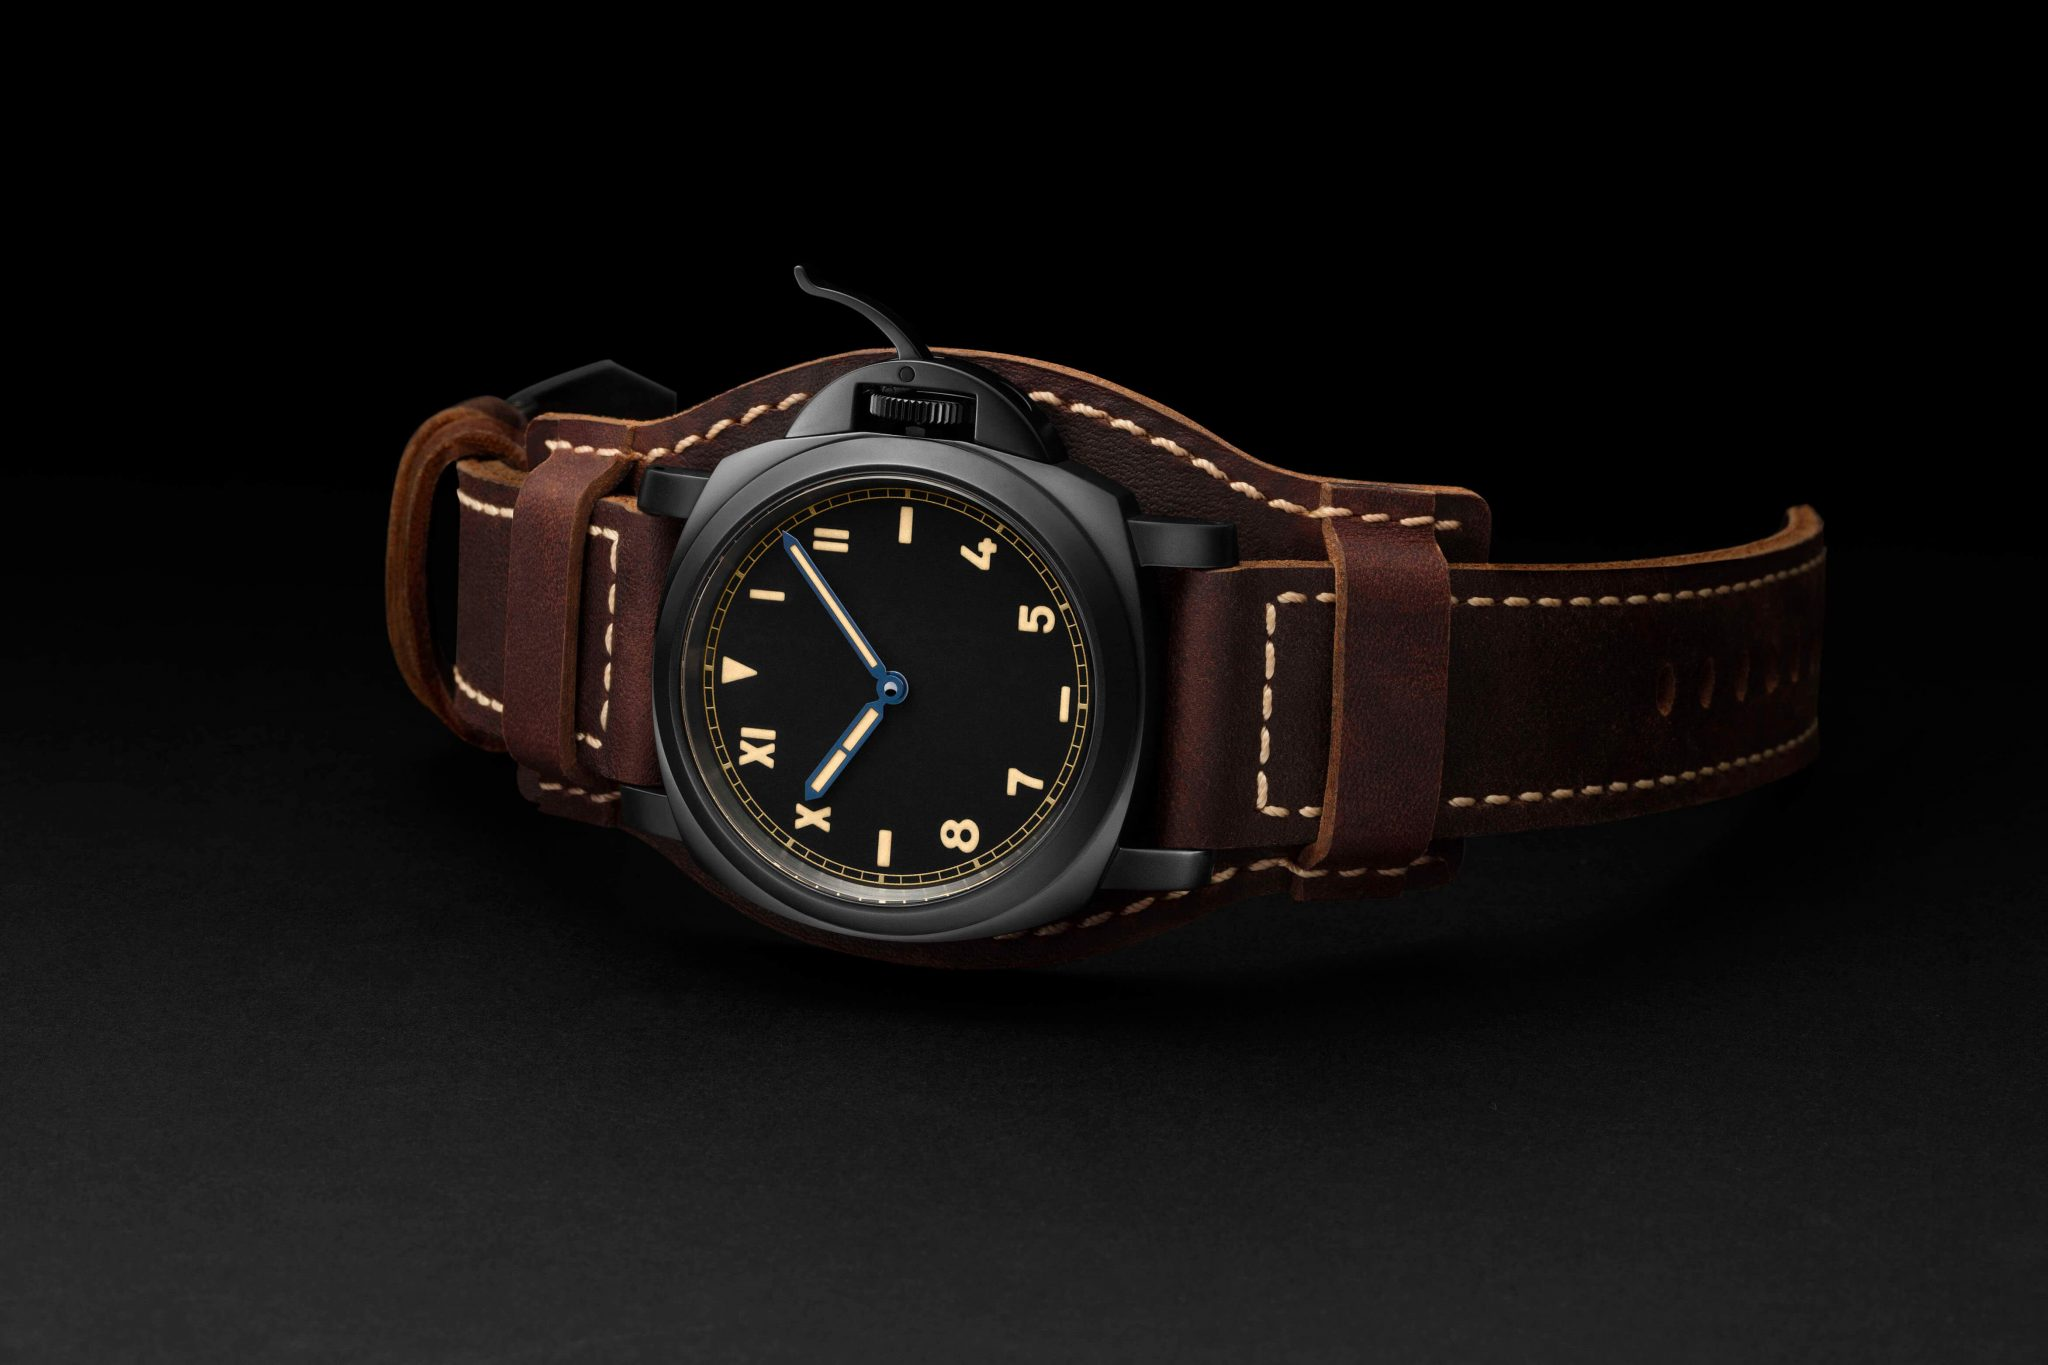 Panerai Luminor California 8 days dlc lifestyle 2